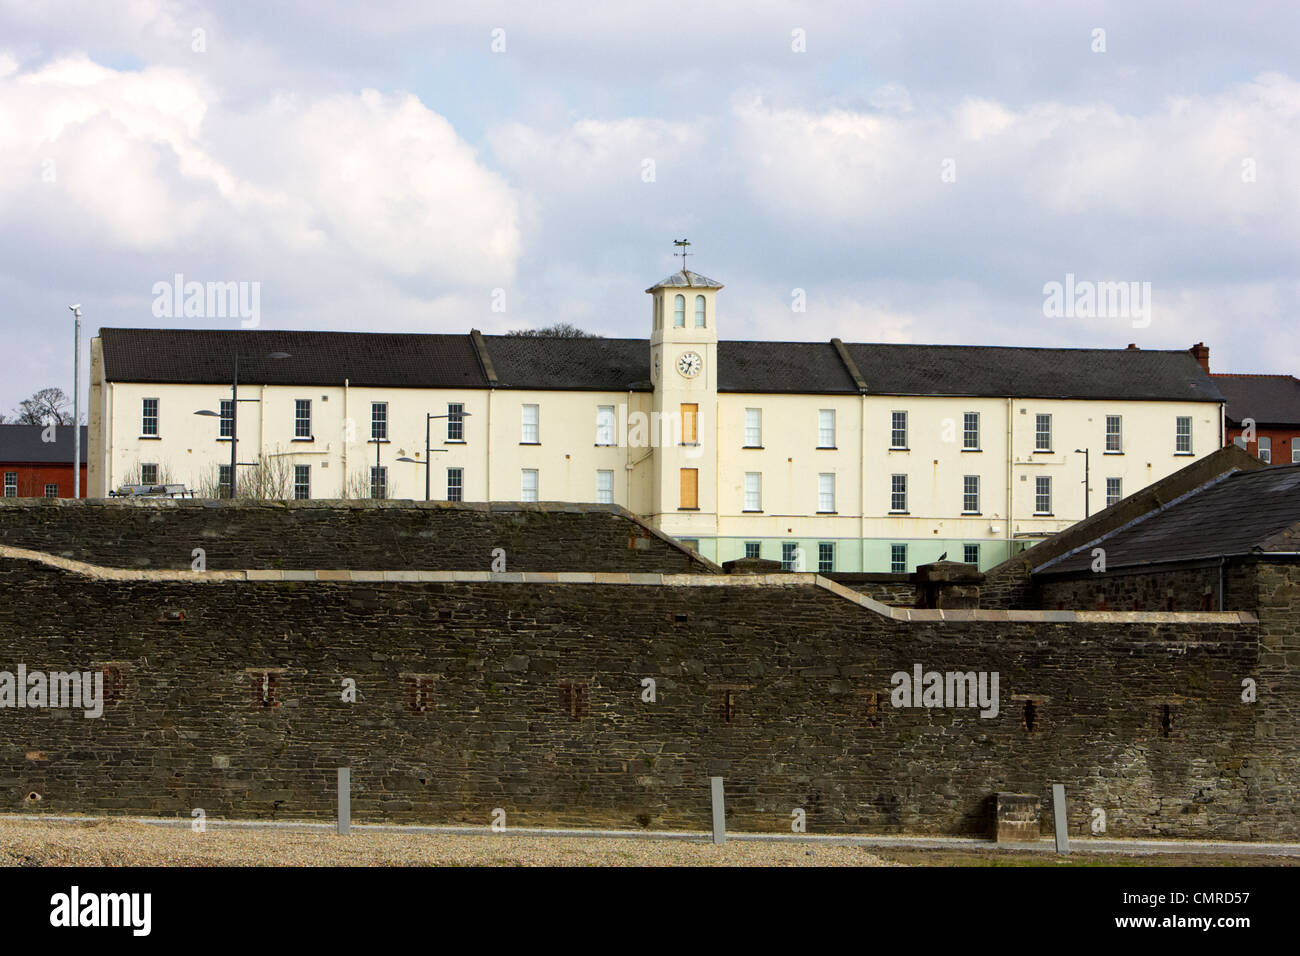 soldiers quarters with clock tower and defensive wall in ebrington square former ebrington barracks british military - Stock Image